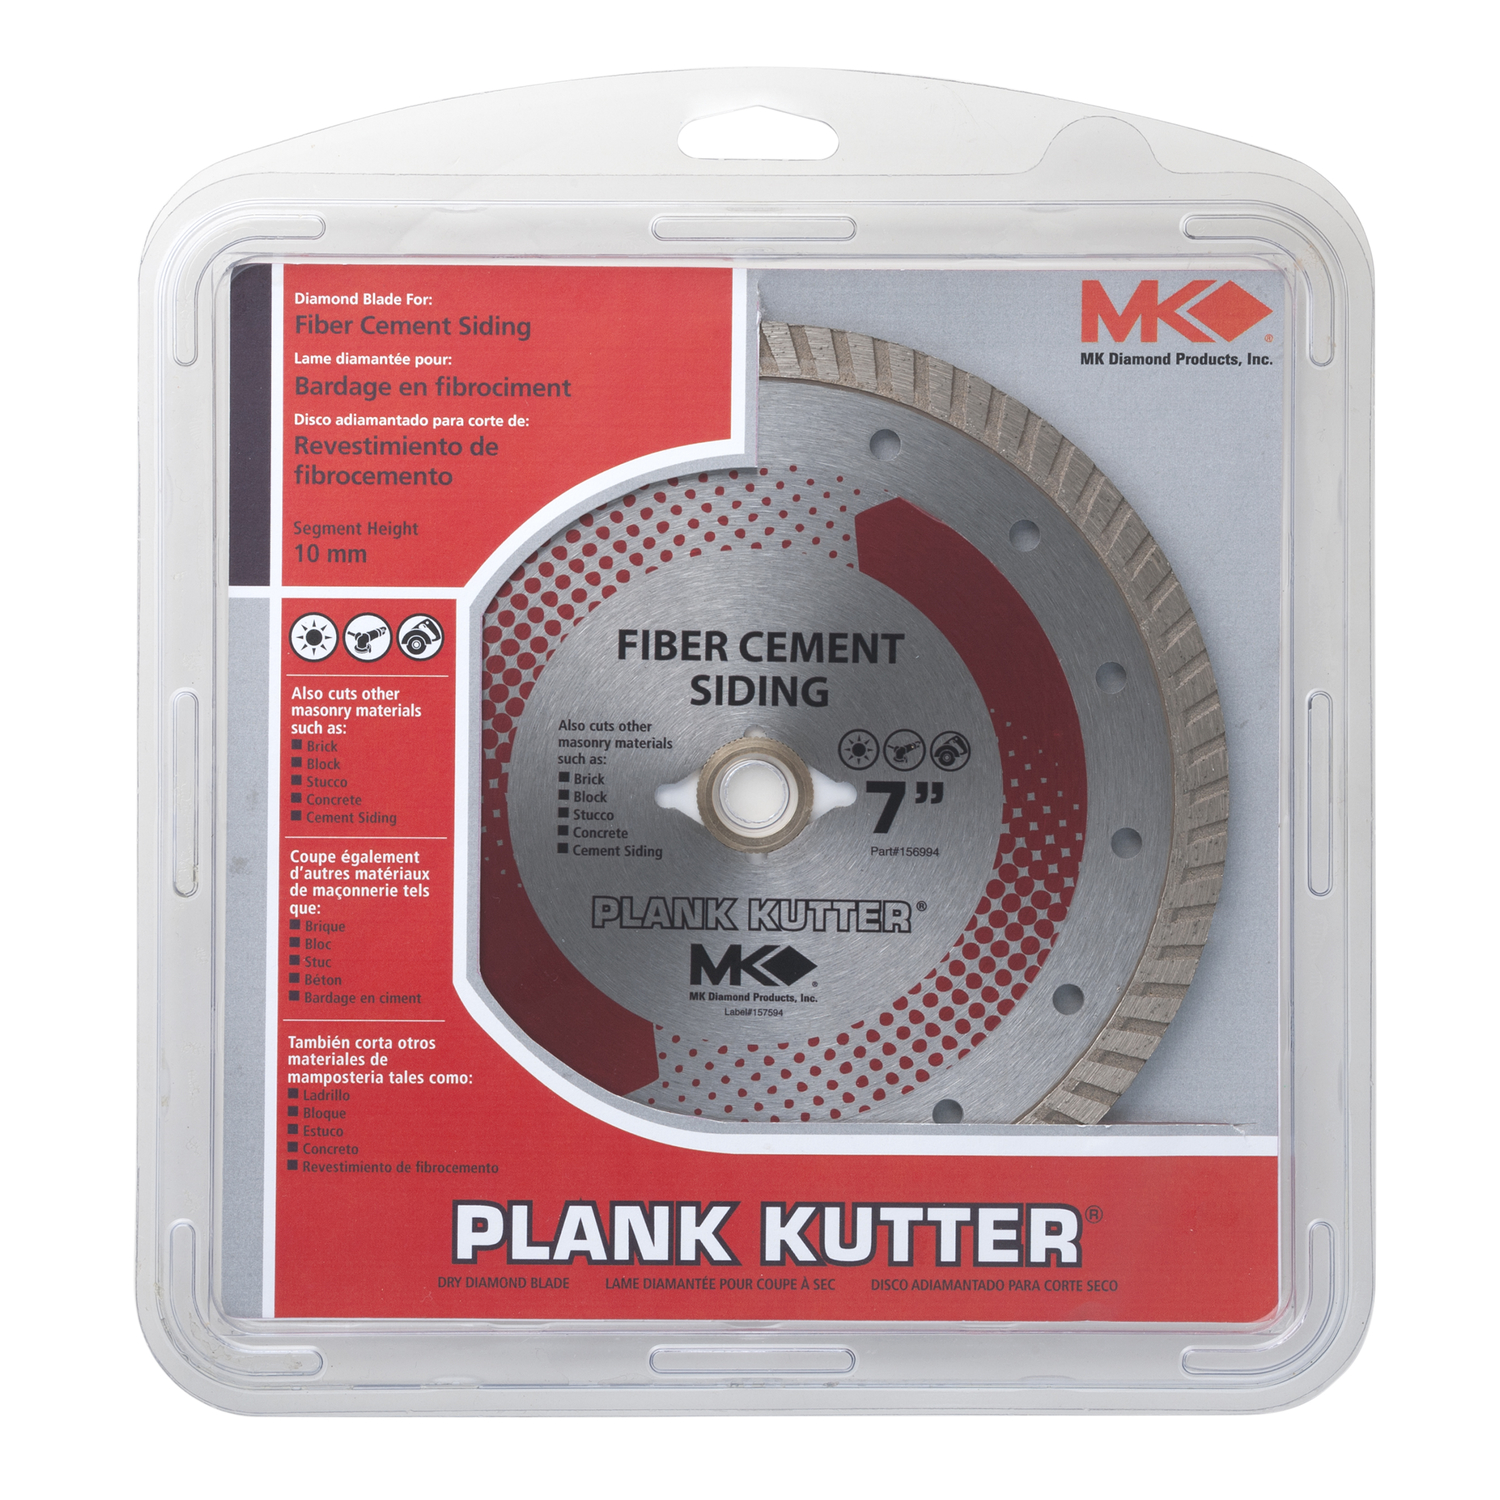 M.K. Diamond  0.08 in.  Plank Kutter  Continuous Rim Circular Saw Blade  5/8  7  Diamond  1 pk